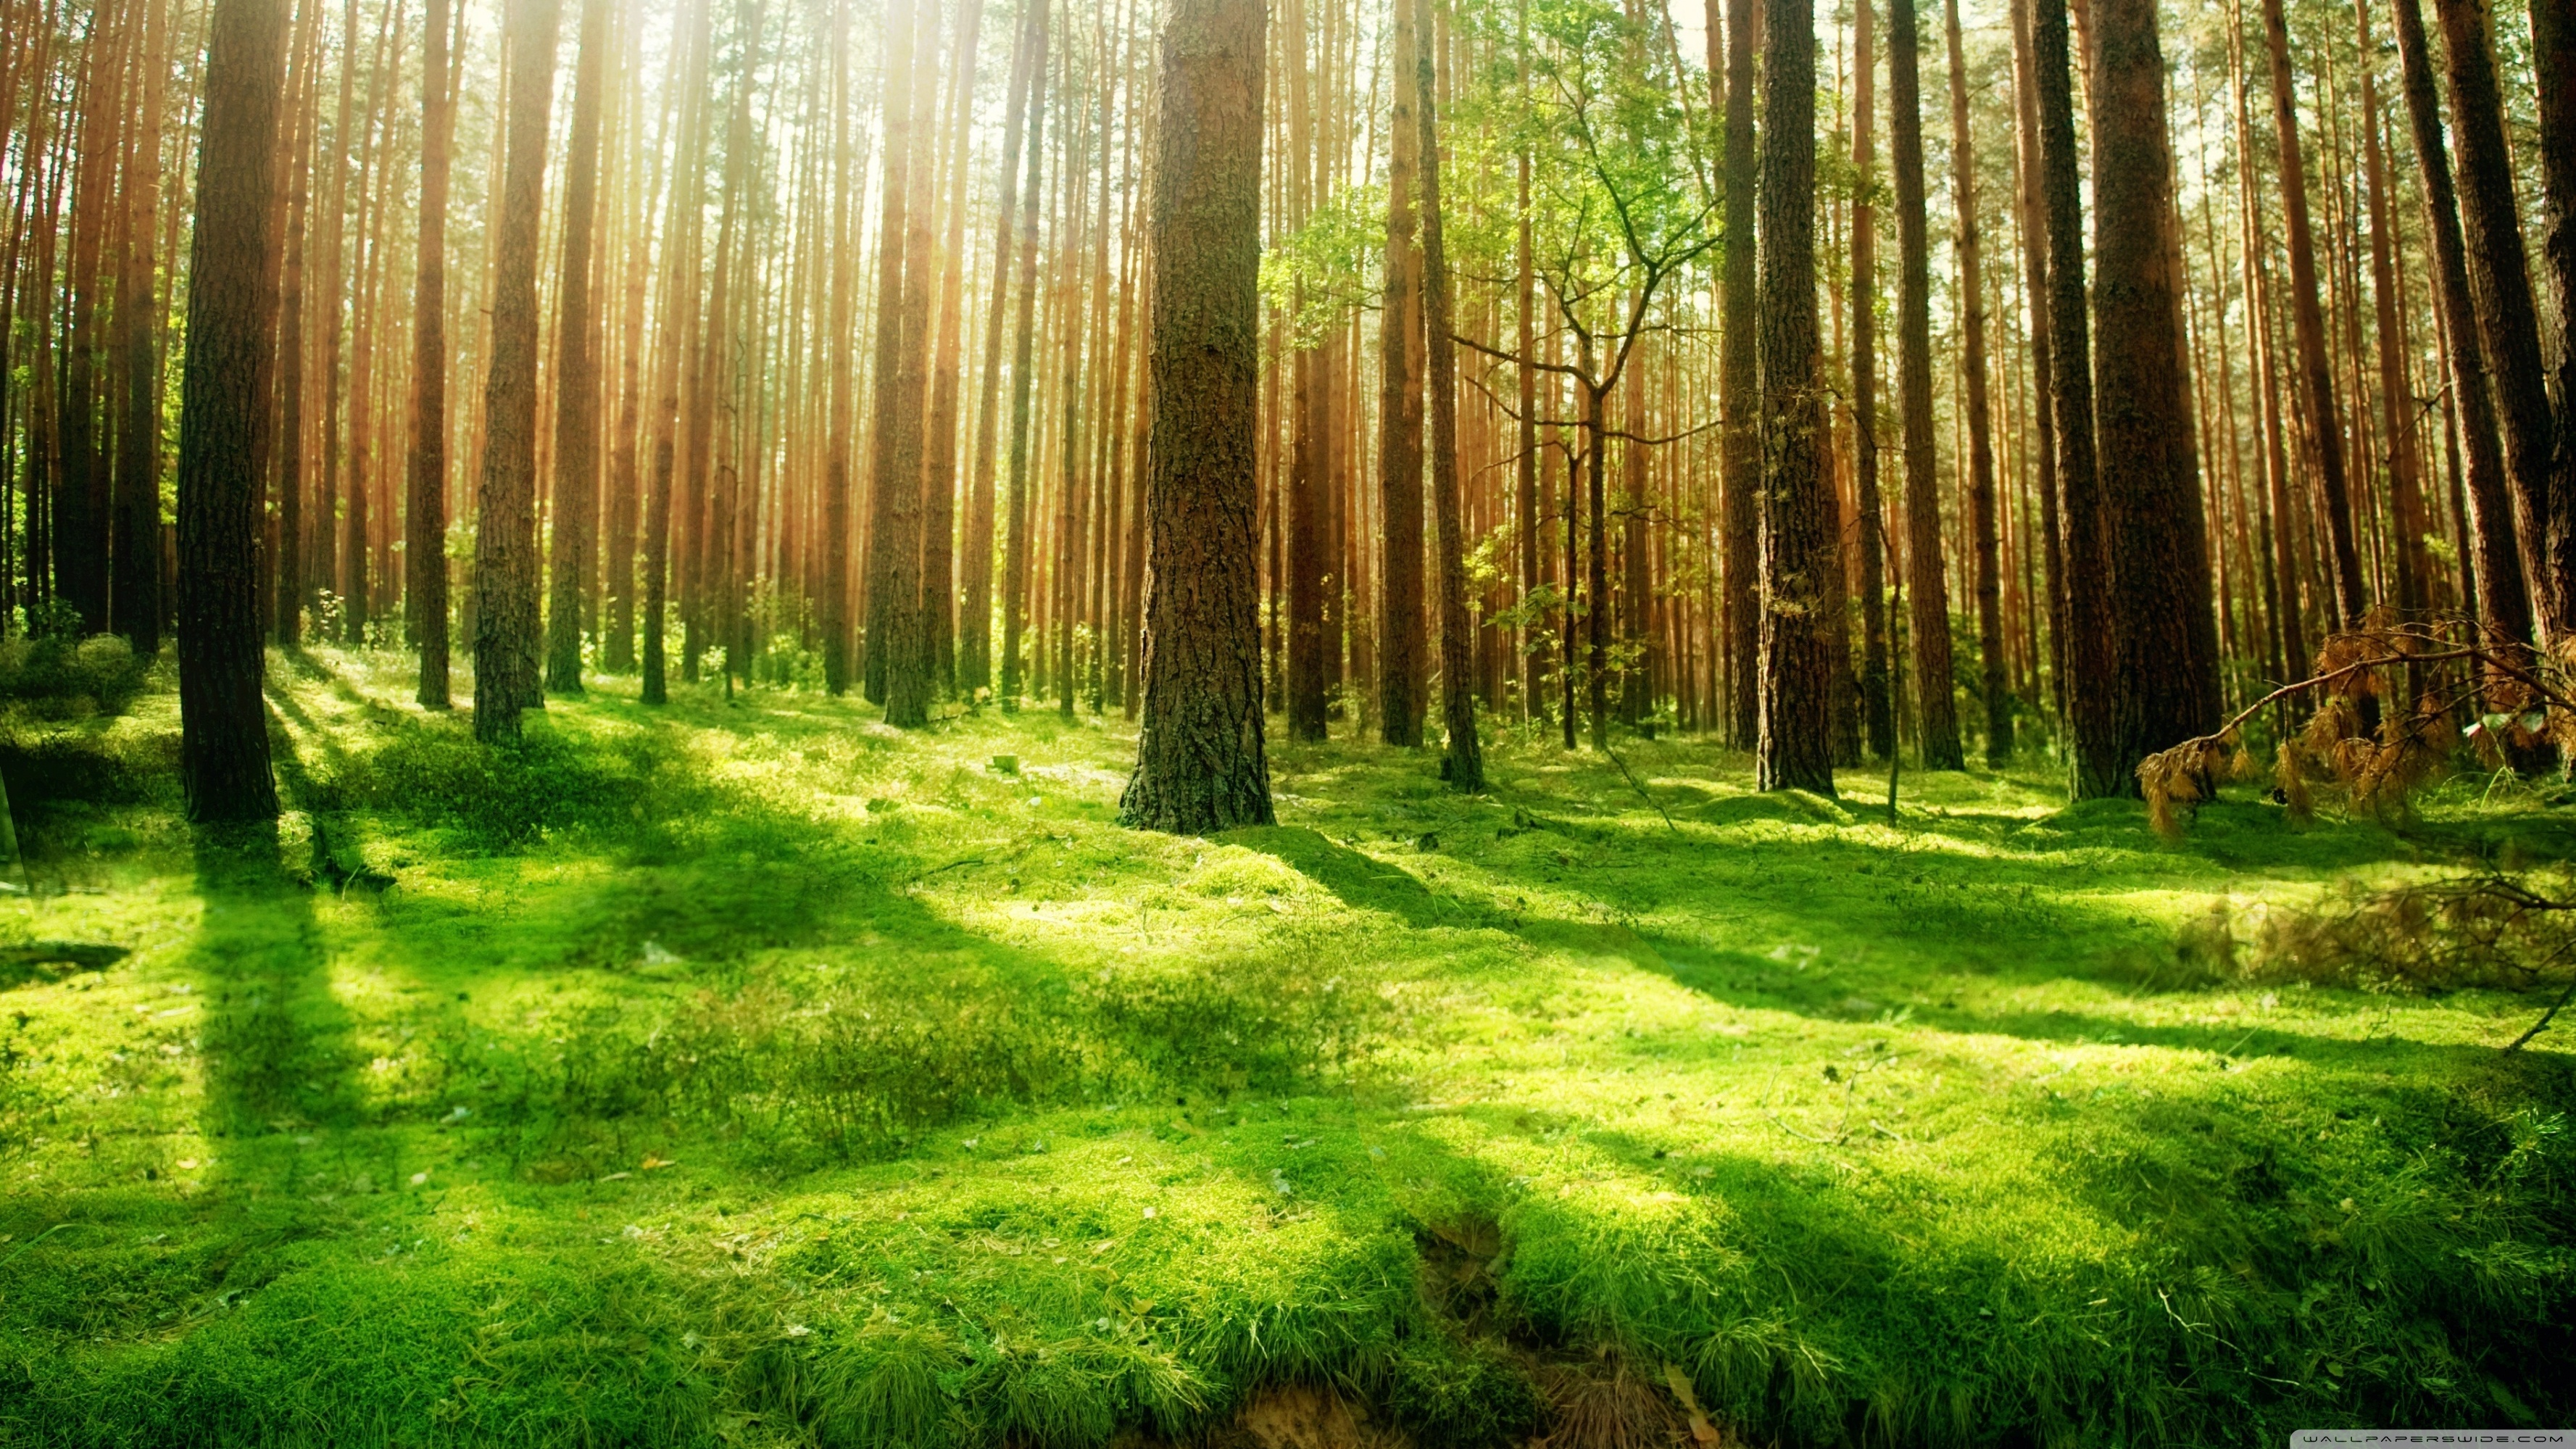 Forest Wallpaper HD